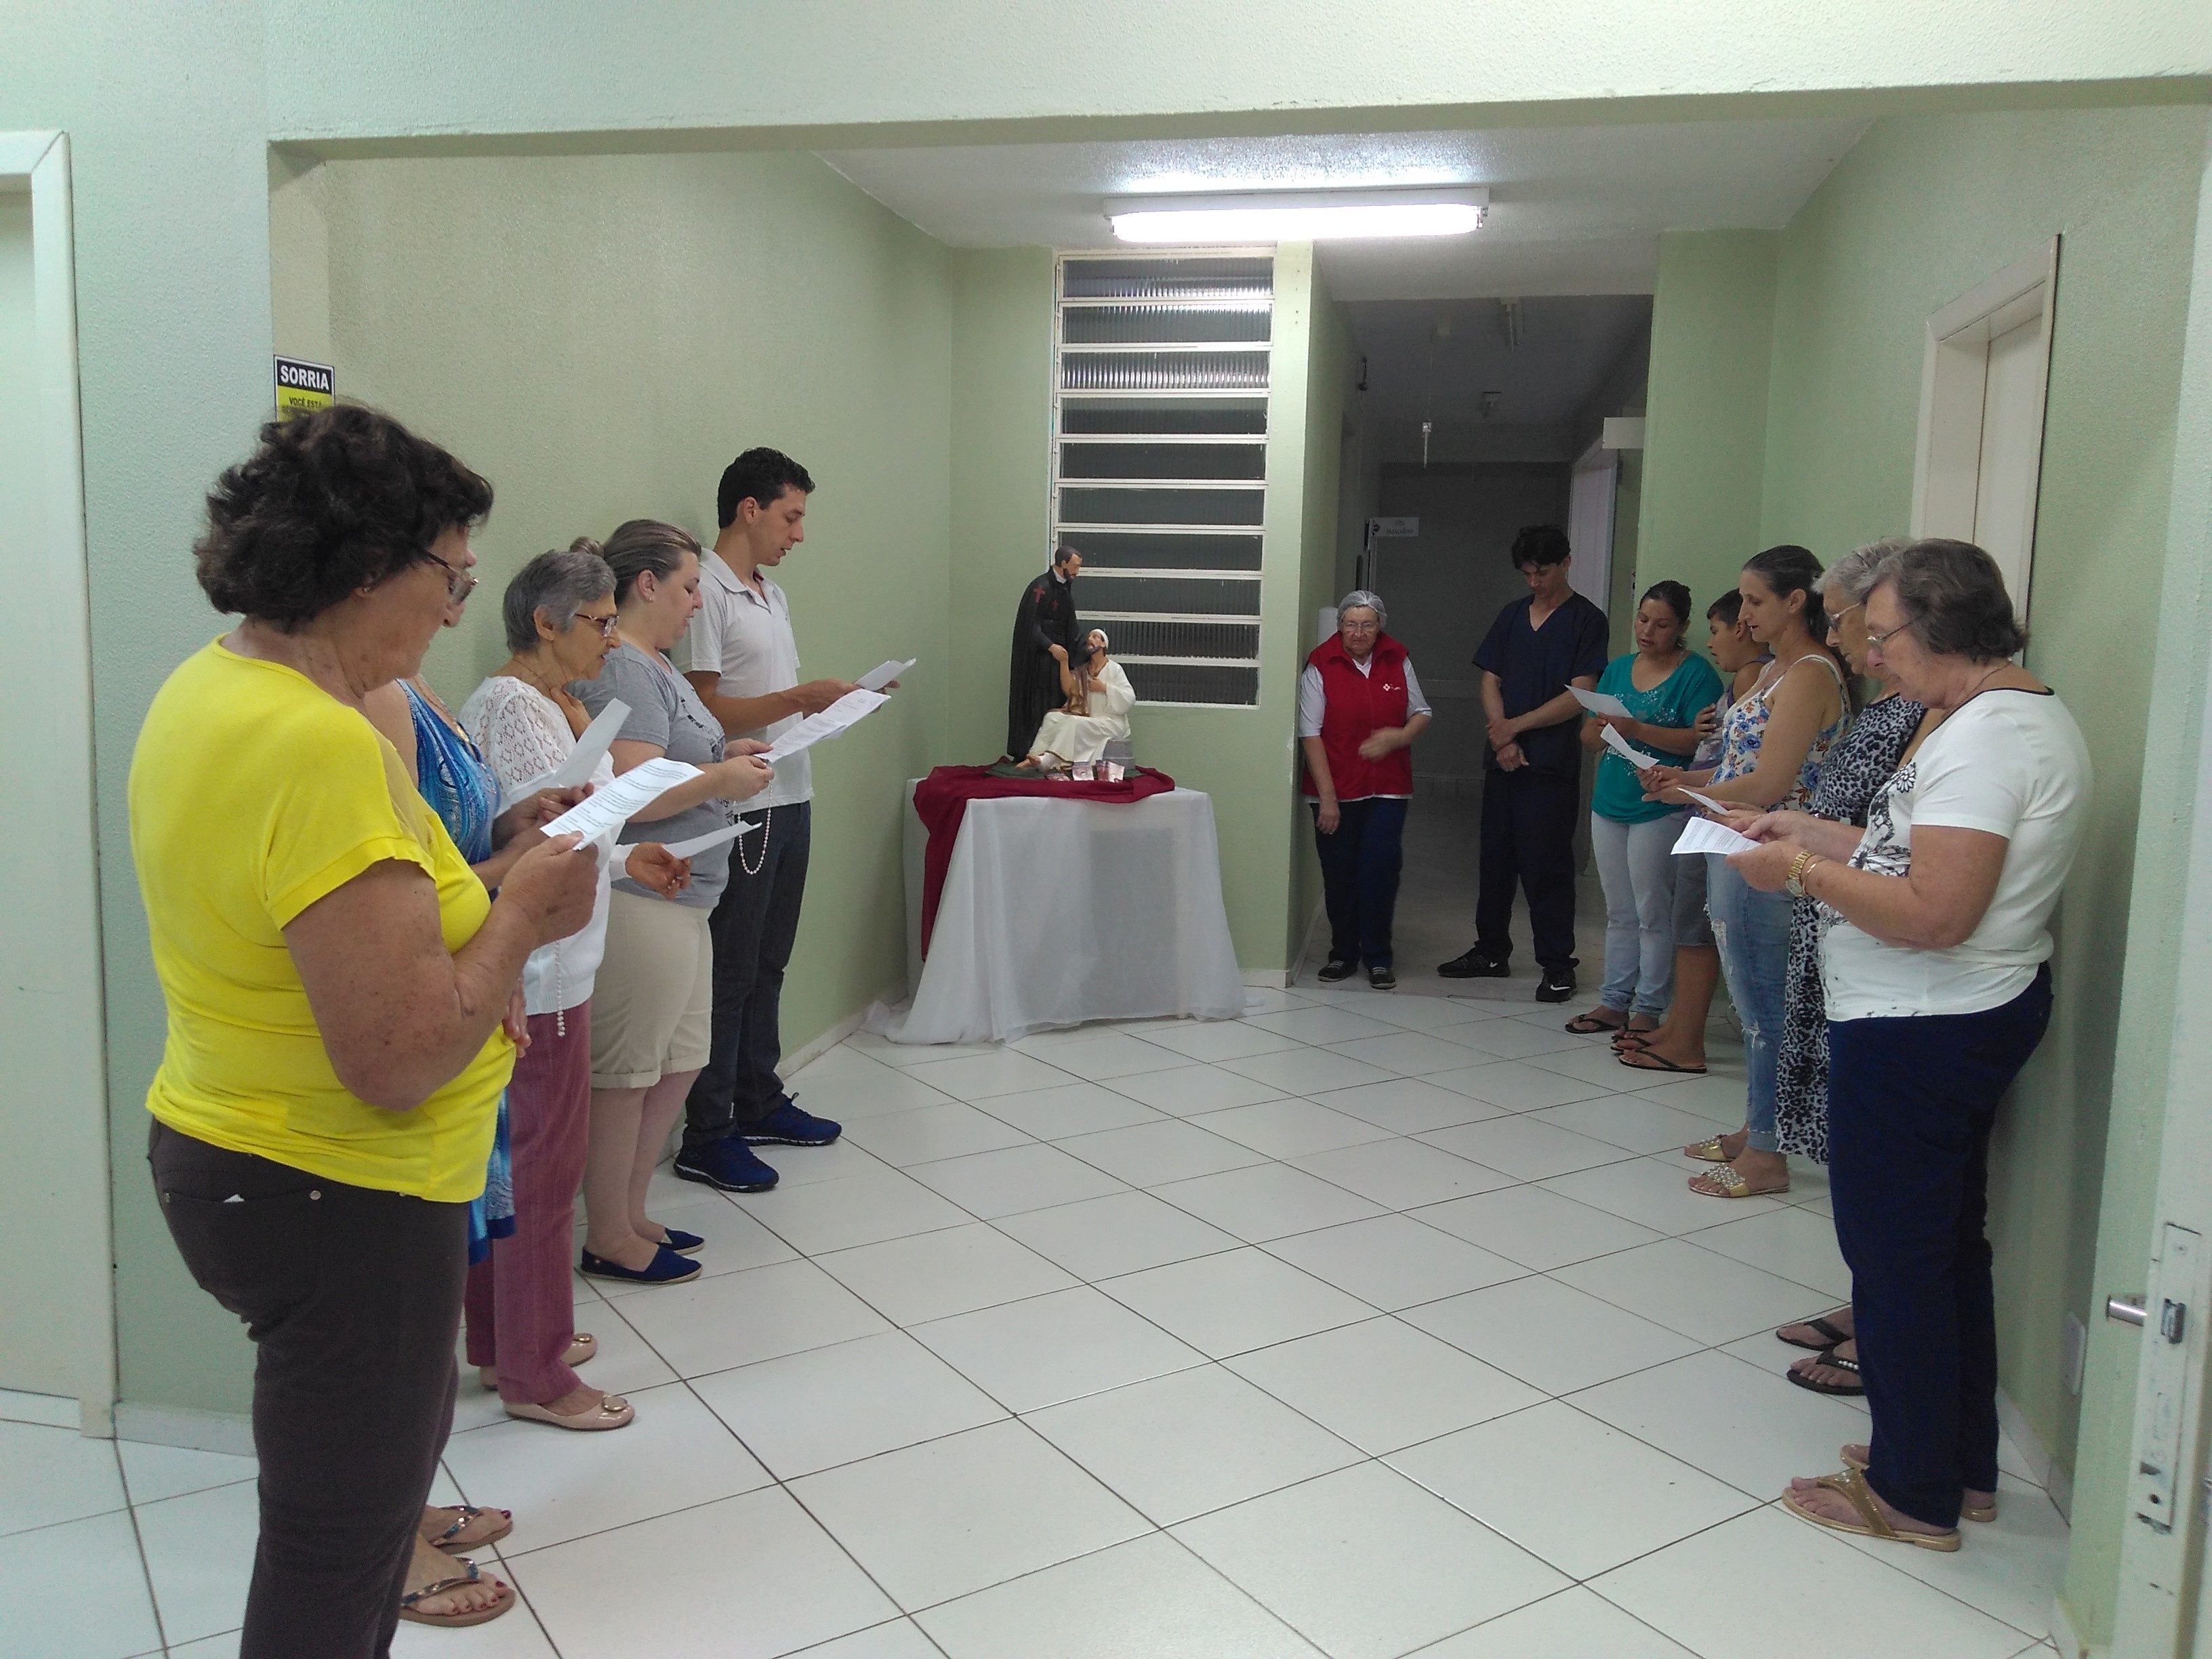 DIA MUNDIAL DO DOENTE Beneficência Camiliana do Sul Hospital São Camilo / Ipumirim SC